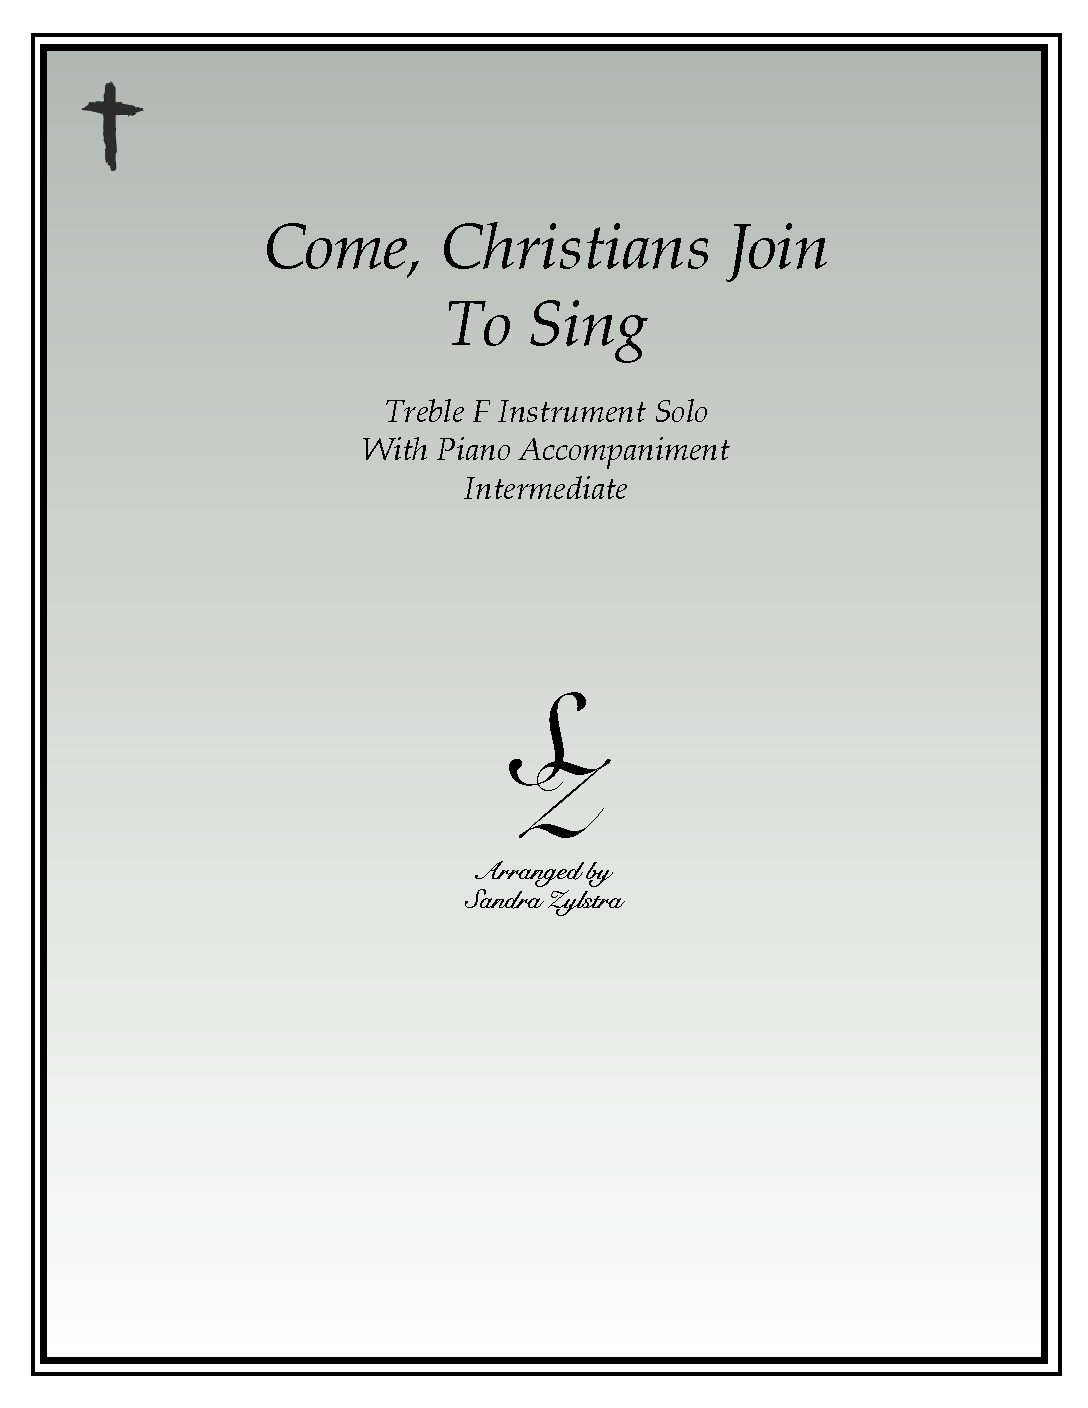 IS 18 Come Christians Join To Sing 03 Treble F 2 pdf